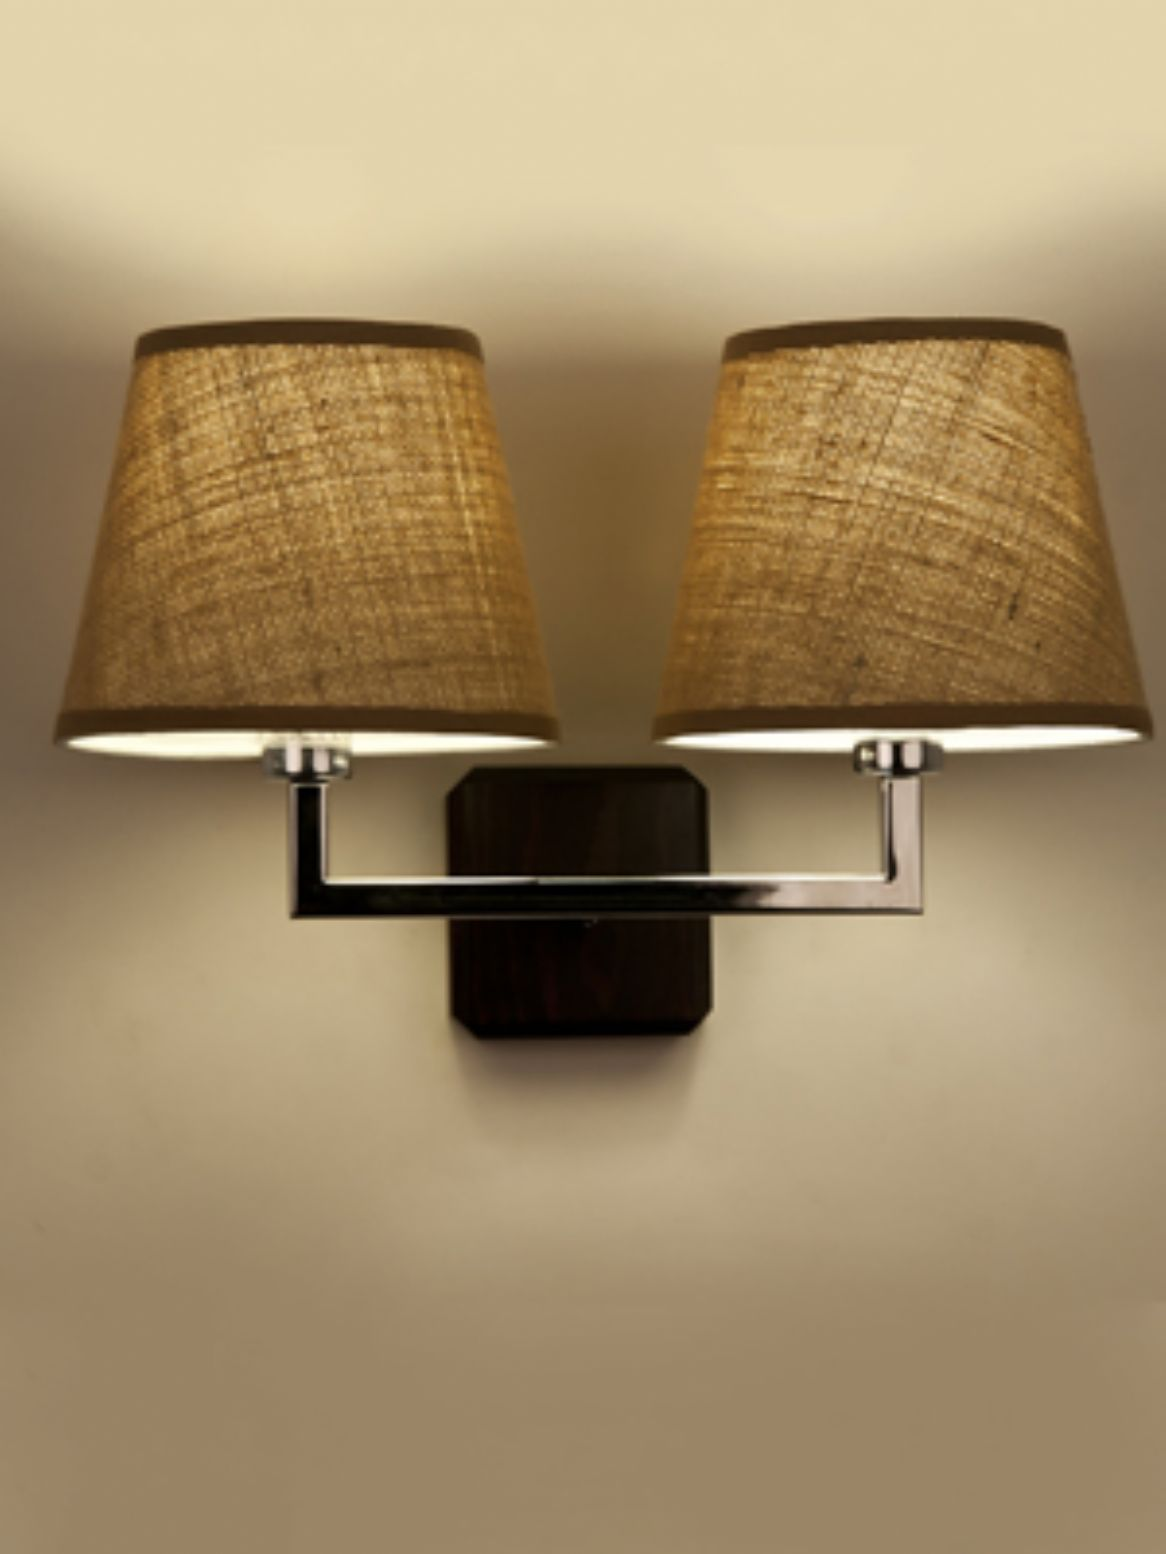 twin chrome wall light with brown fabric shadesby chantelle